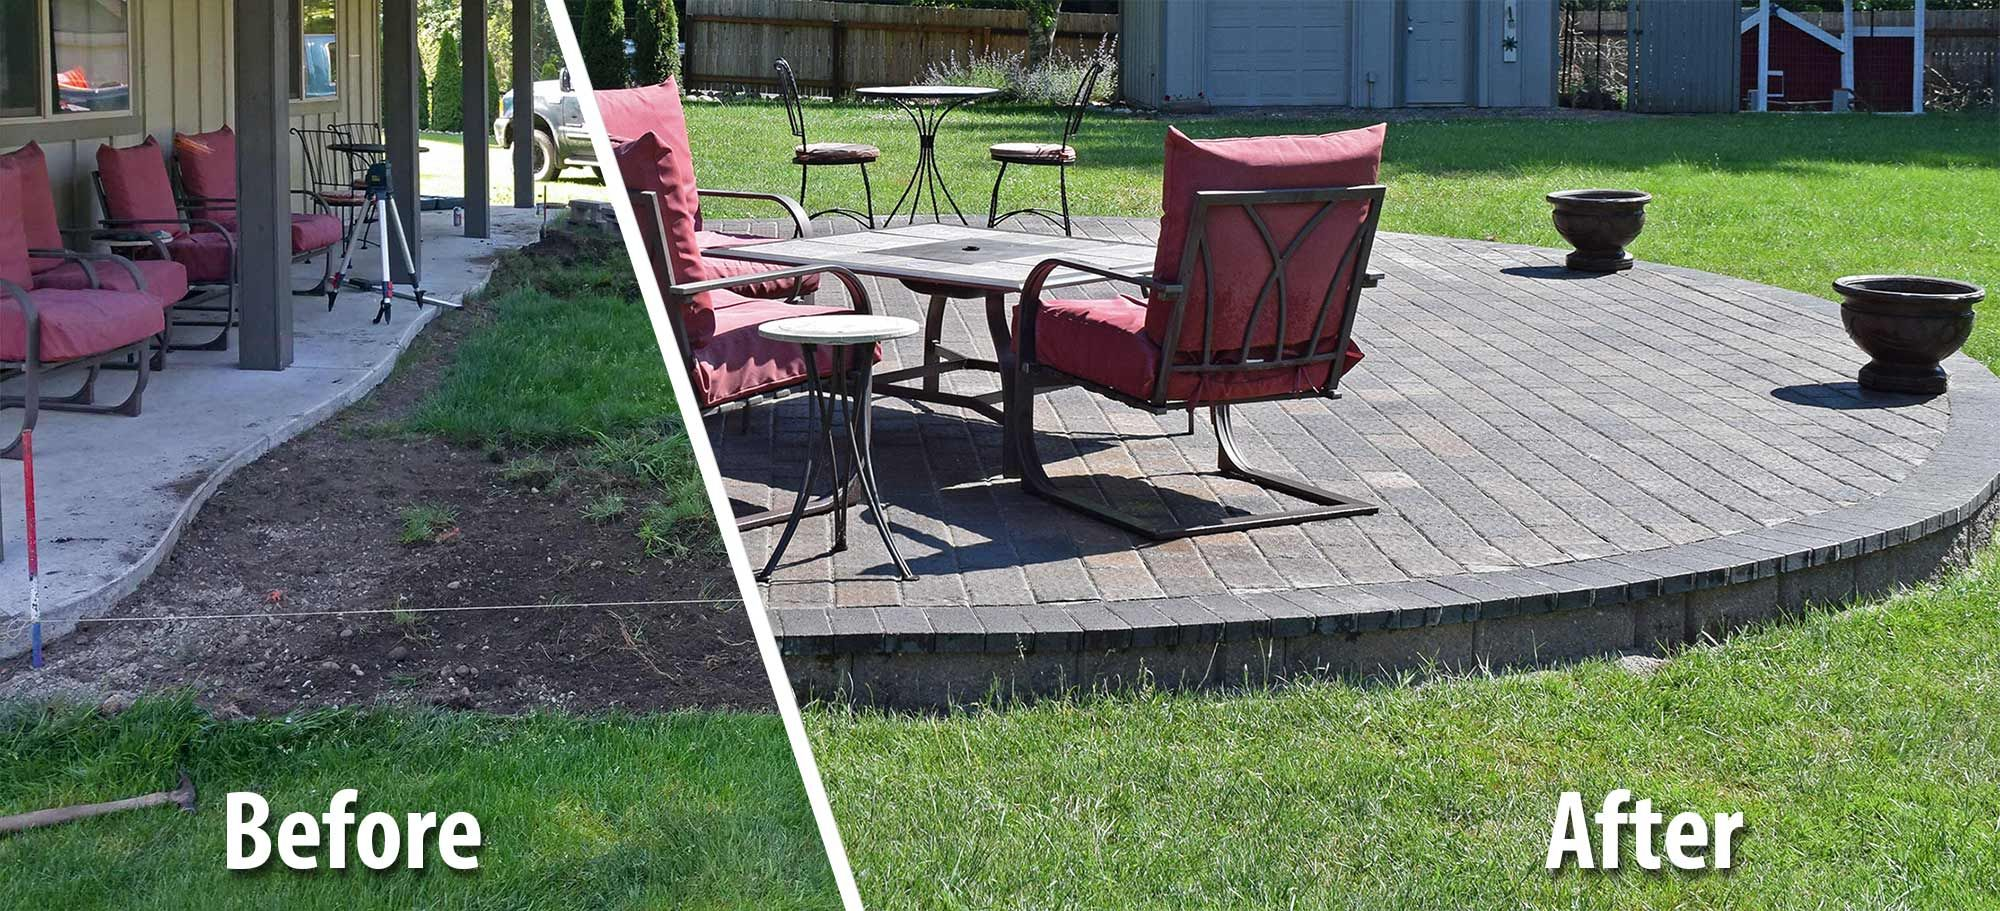 Raised Paver Patio In East Olympia Complements Existing Concrete Slab With  Depth And Color.